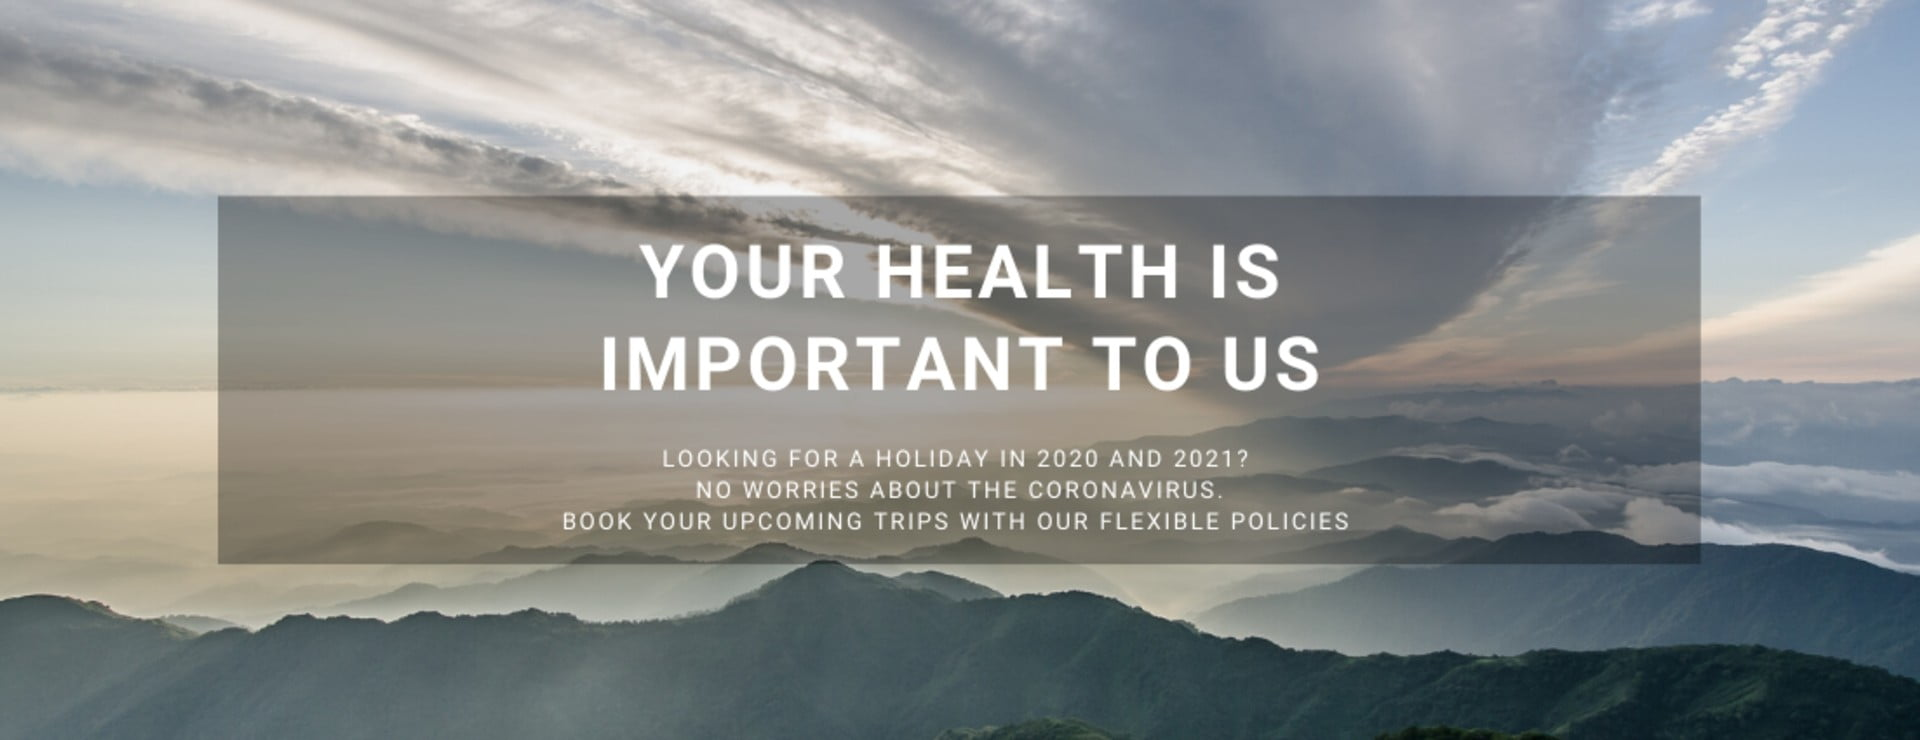 Looking for a holiday in 2020 & 2021? No worries about the Coronavirus